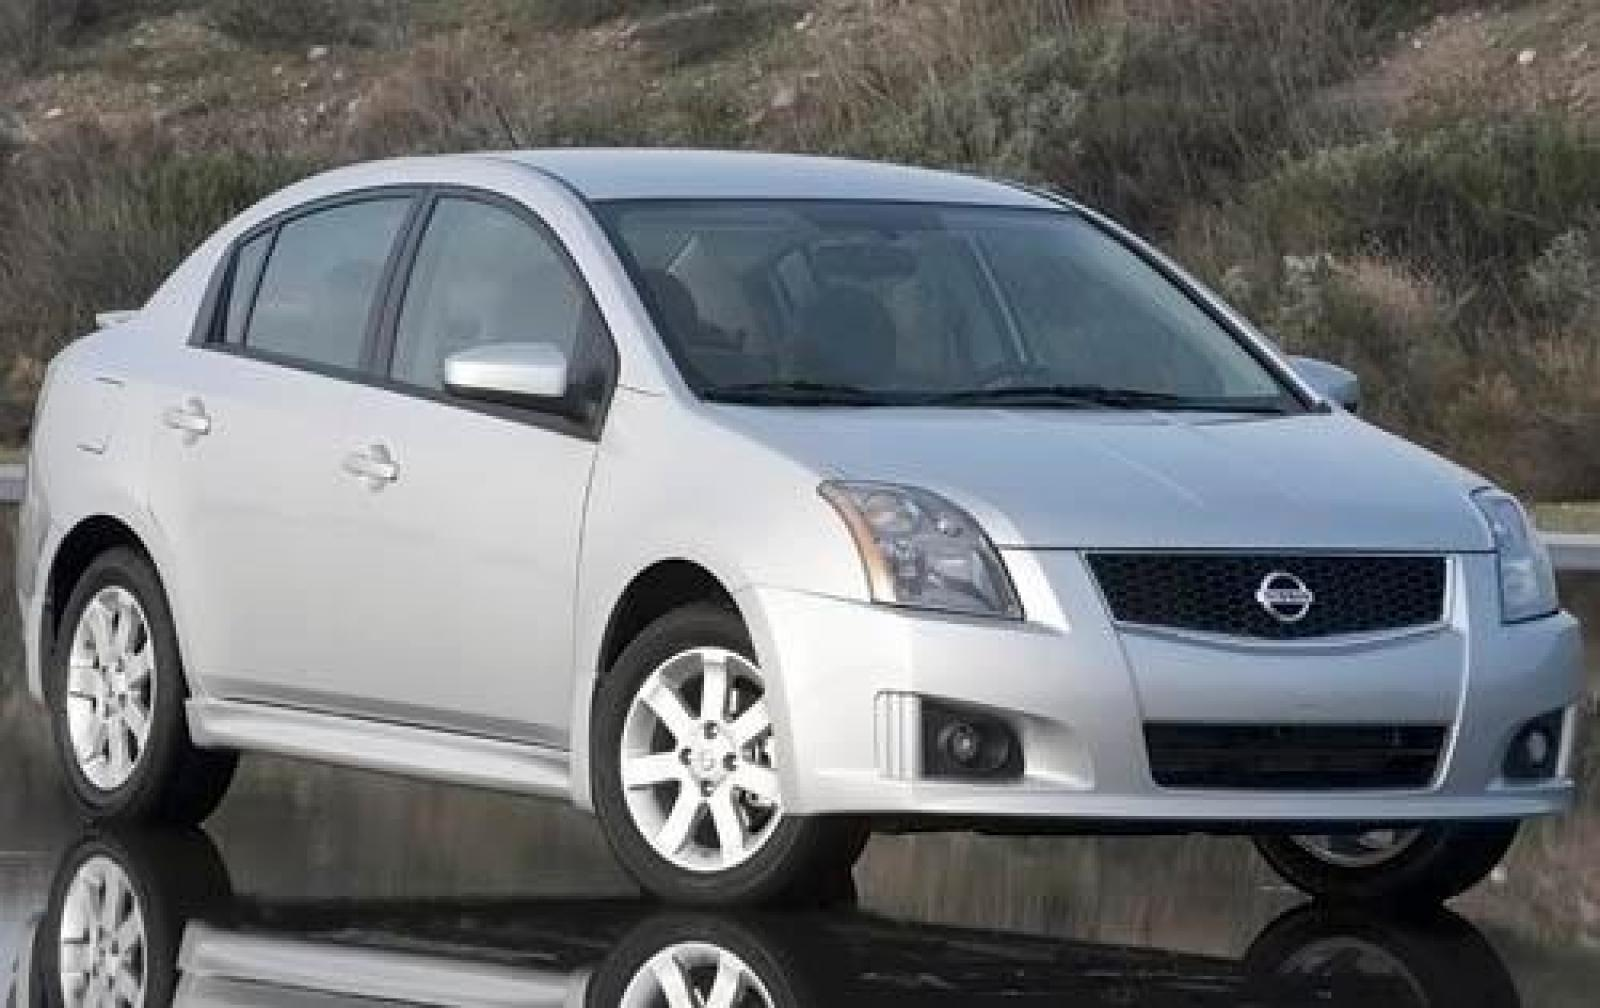 2009 Nissan Sentra Information And Photos Zombiedrive